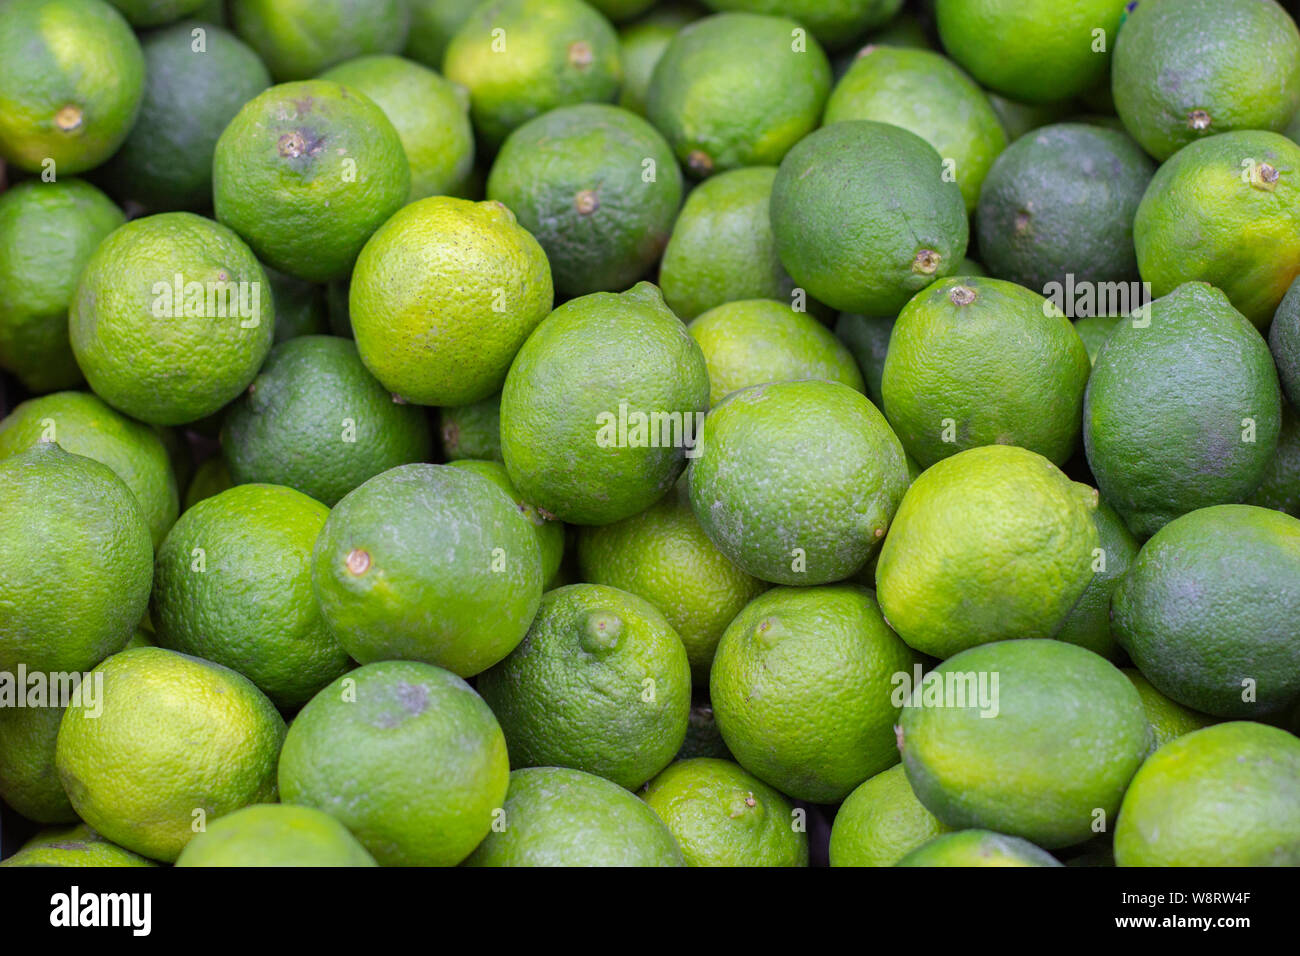 Many Fruits Citrus Lime Green Sour Ripe Lemon Lime Background